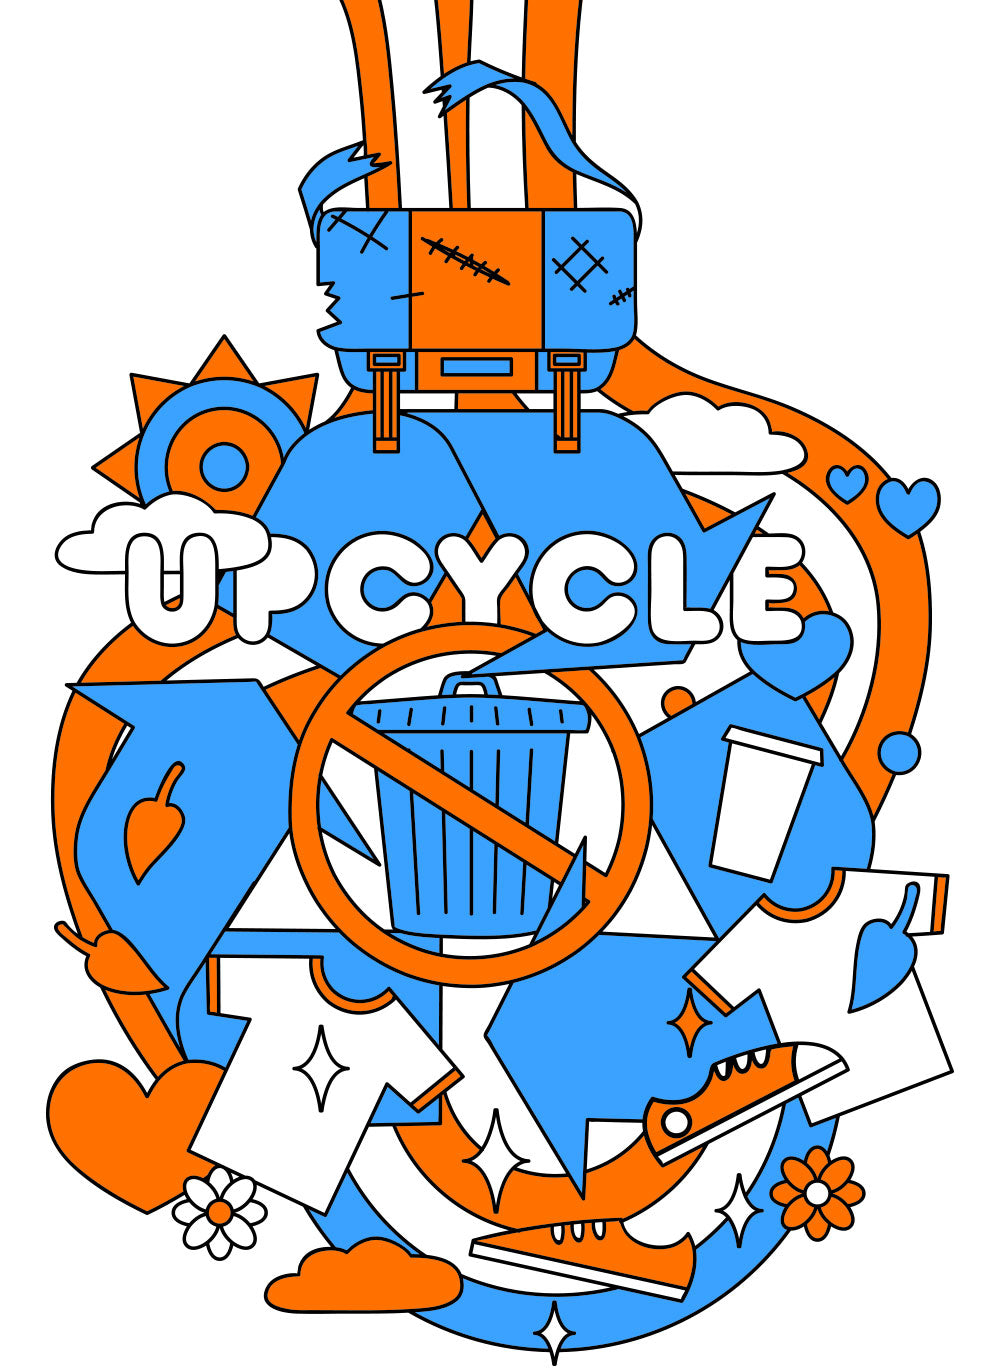 Upcycle. Unusable or unrepairable bags go to a materials recycling center for upcycling.